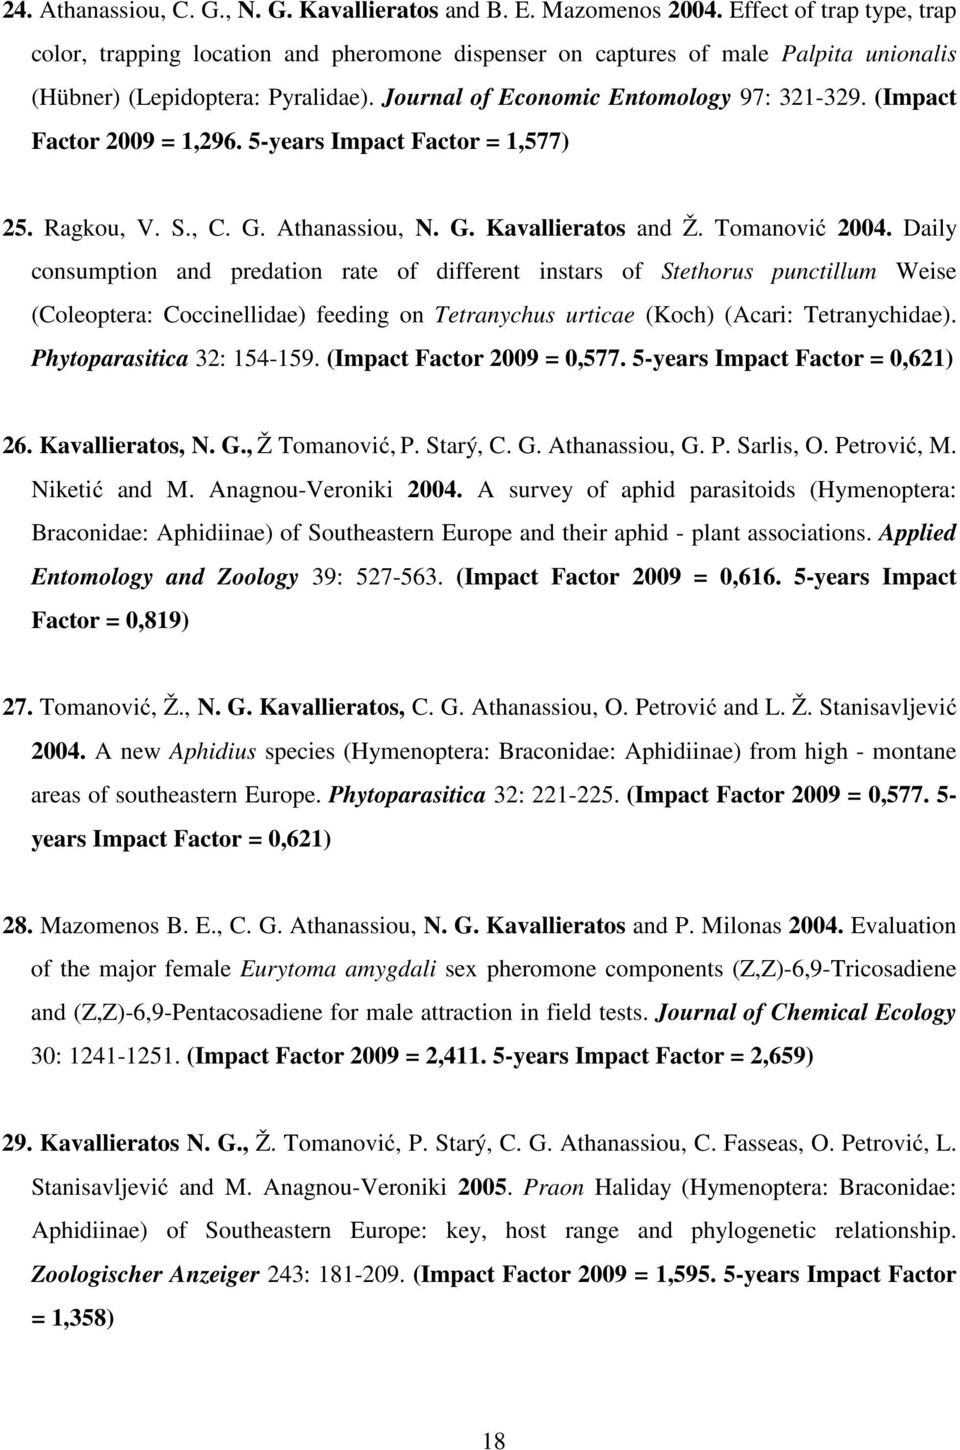 (Impact Factor 2009 = 1,296. 5-years Impact Factor = 1,577) 25. Ragkou, V. S., C. G. Athanassiou, N. G. Kavallieratos and Ž. Tomanović 2004.